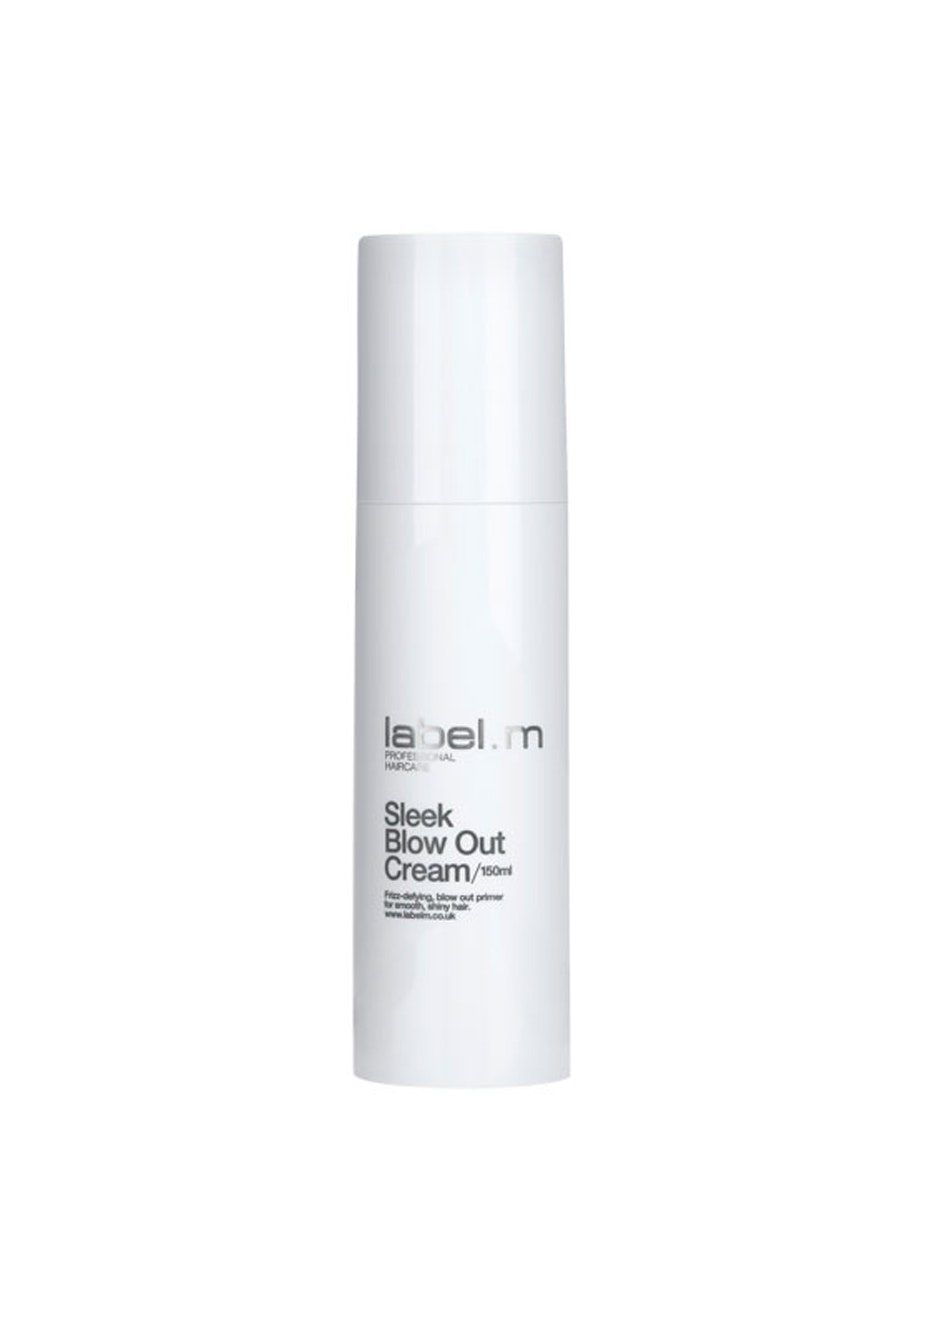 label.m - Blow Out Spray 500ml